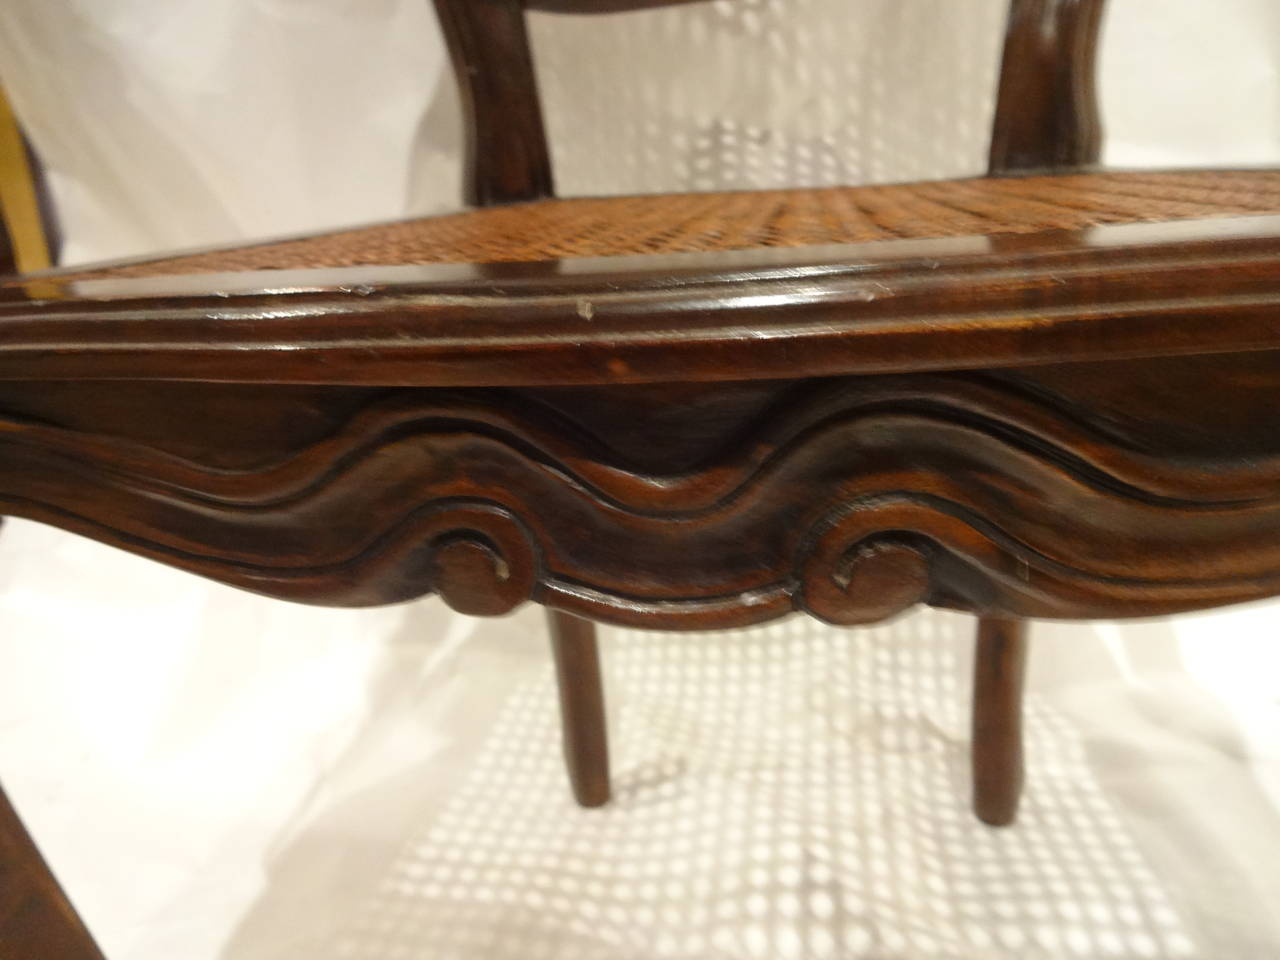 French Provincial Walnut Arm Chair For Sale at 1stdibs